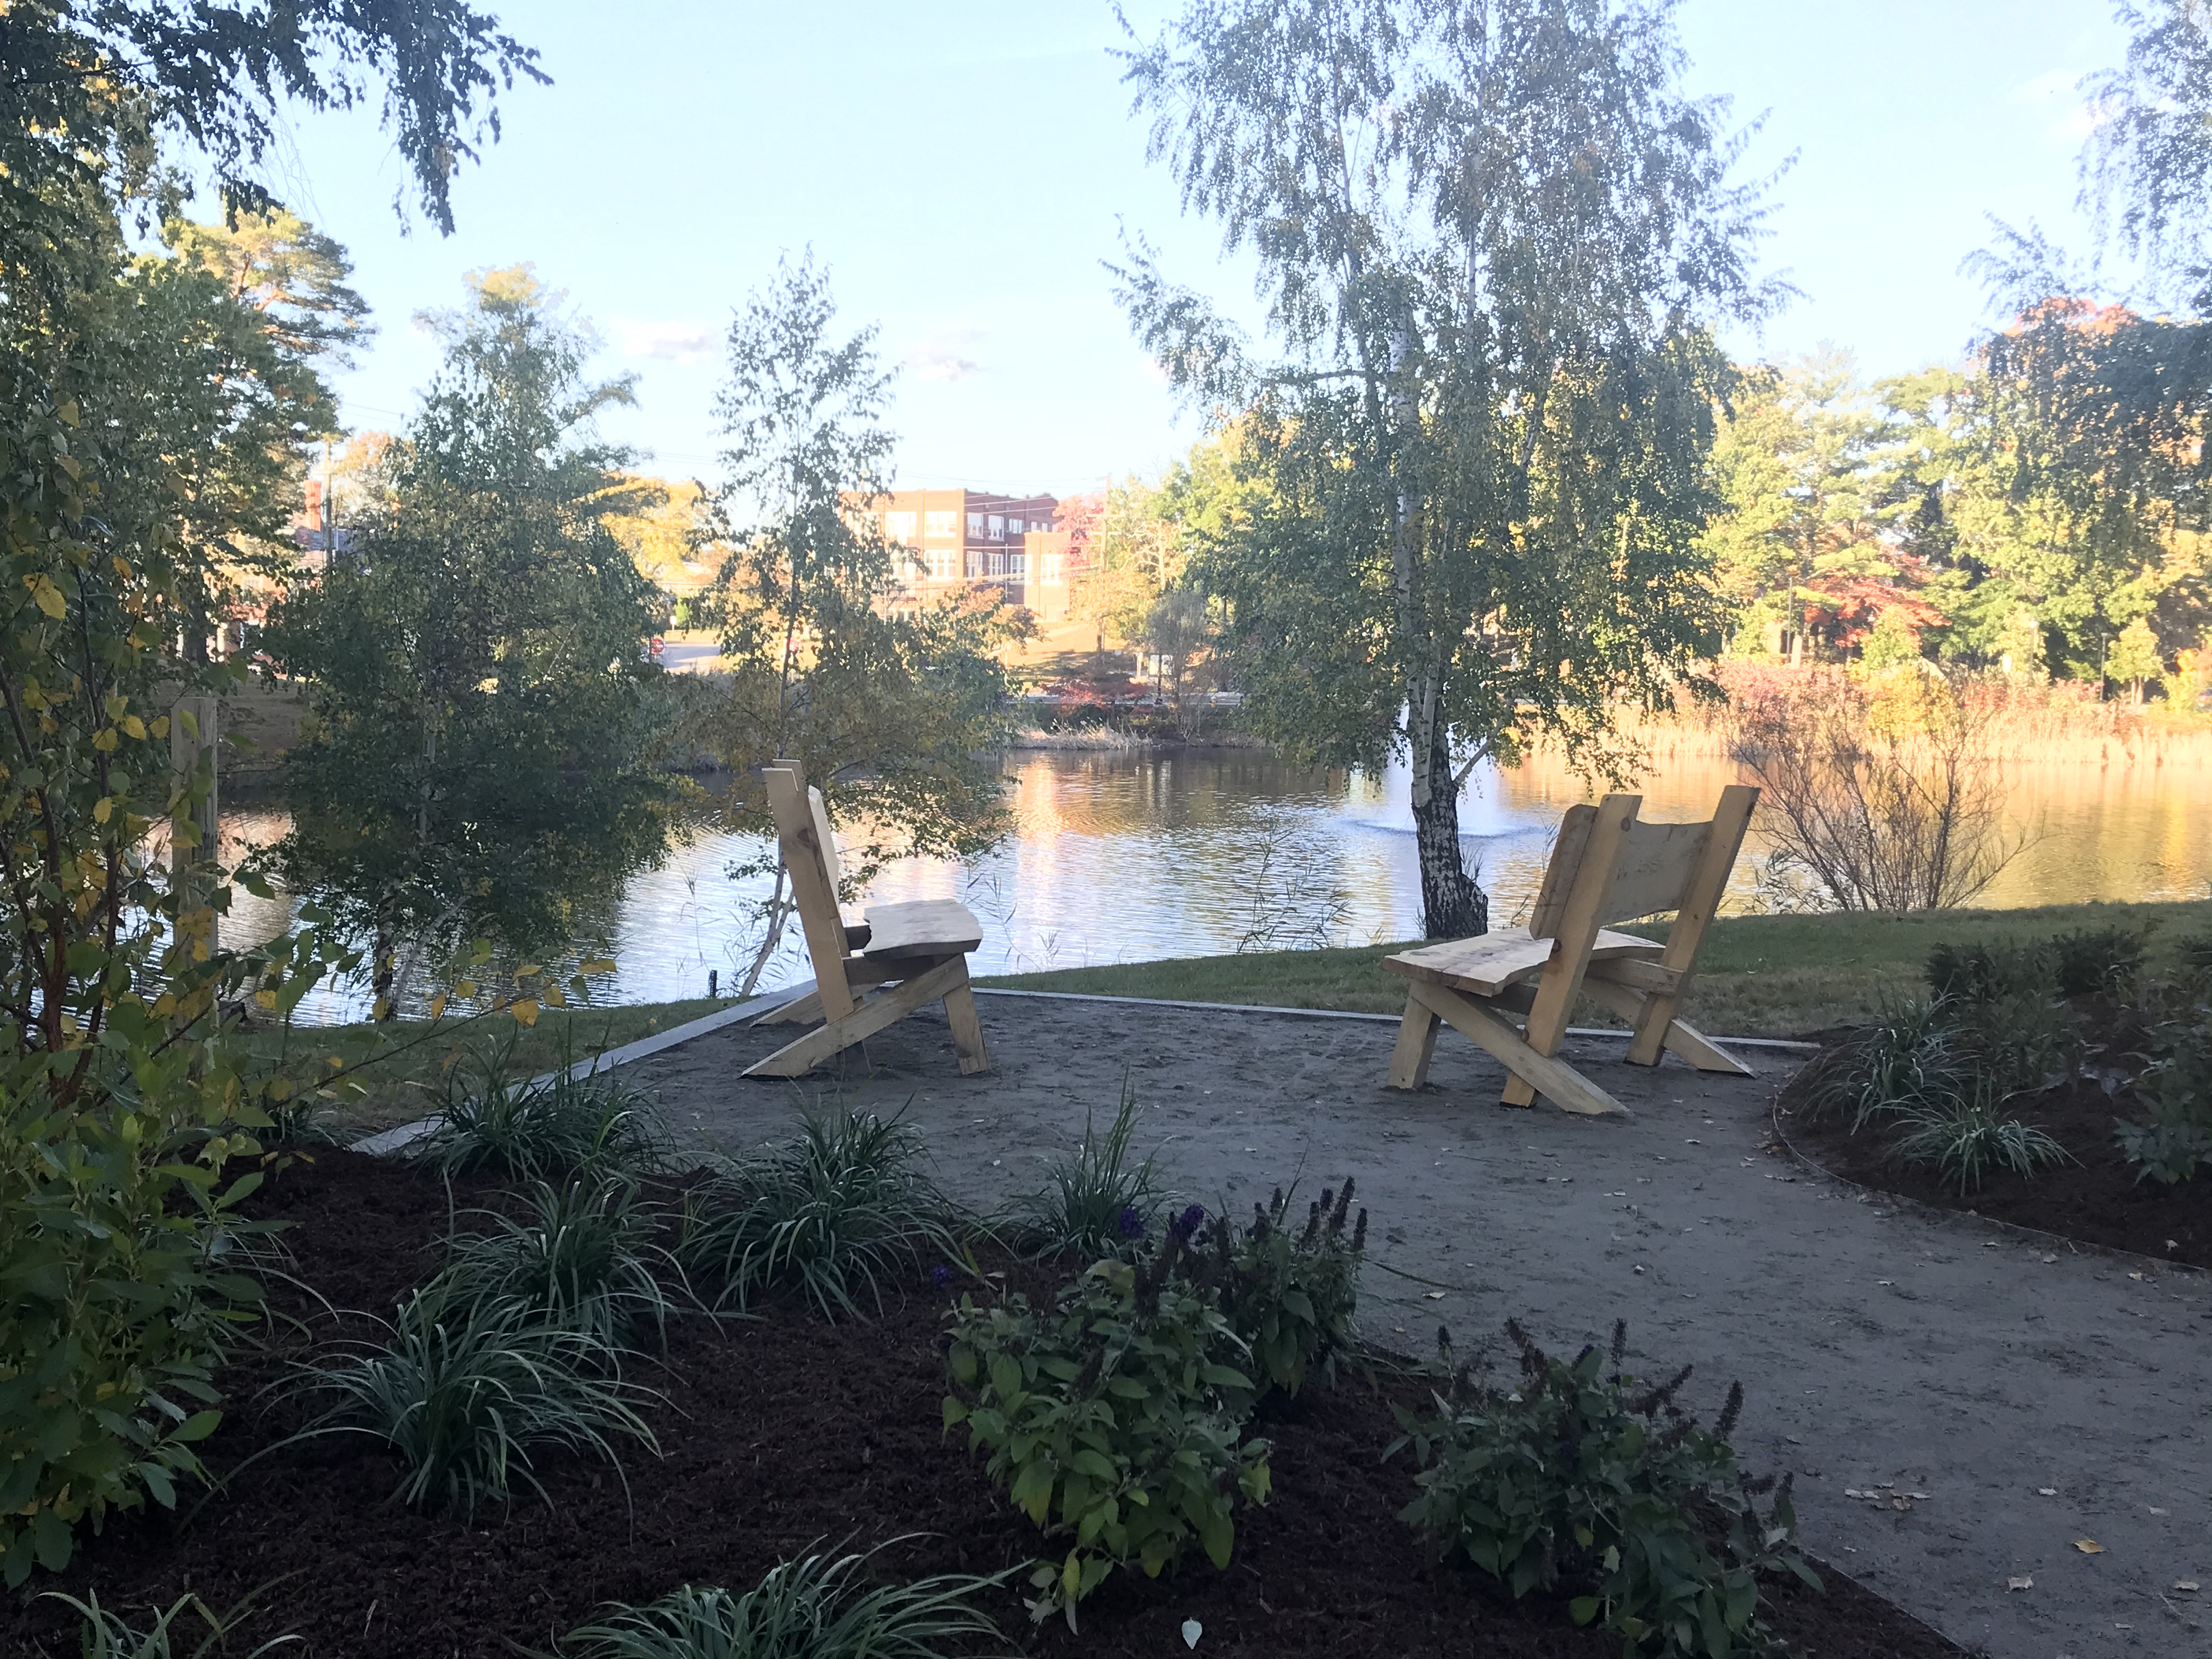 New buddy benches sitting on the side of swan lake